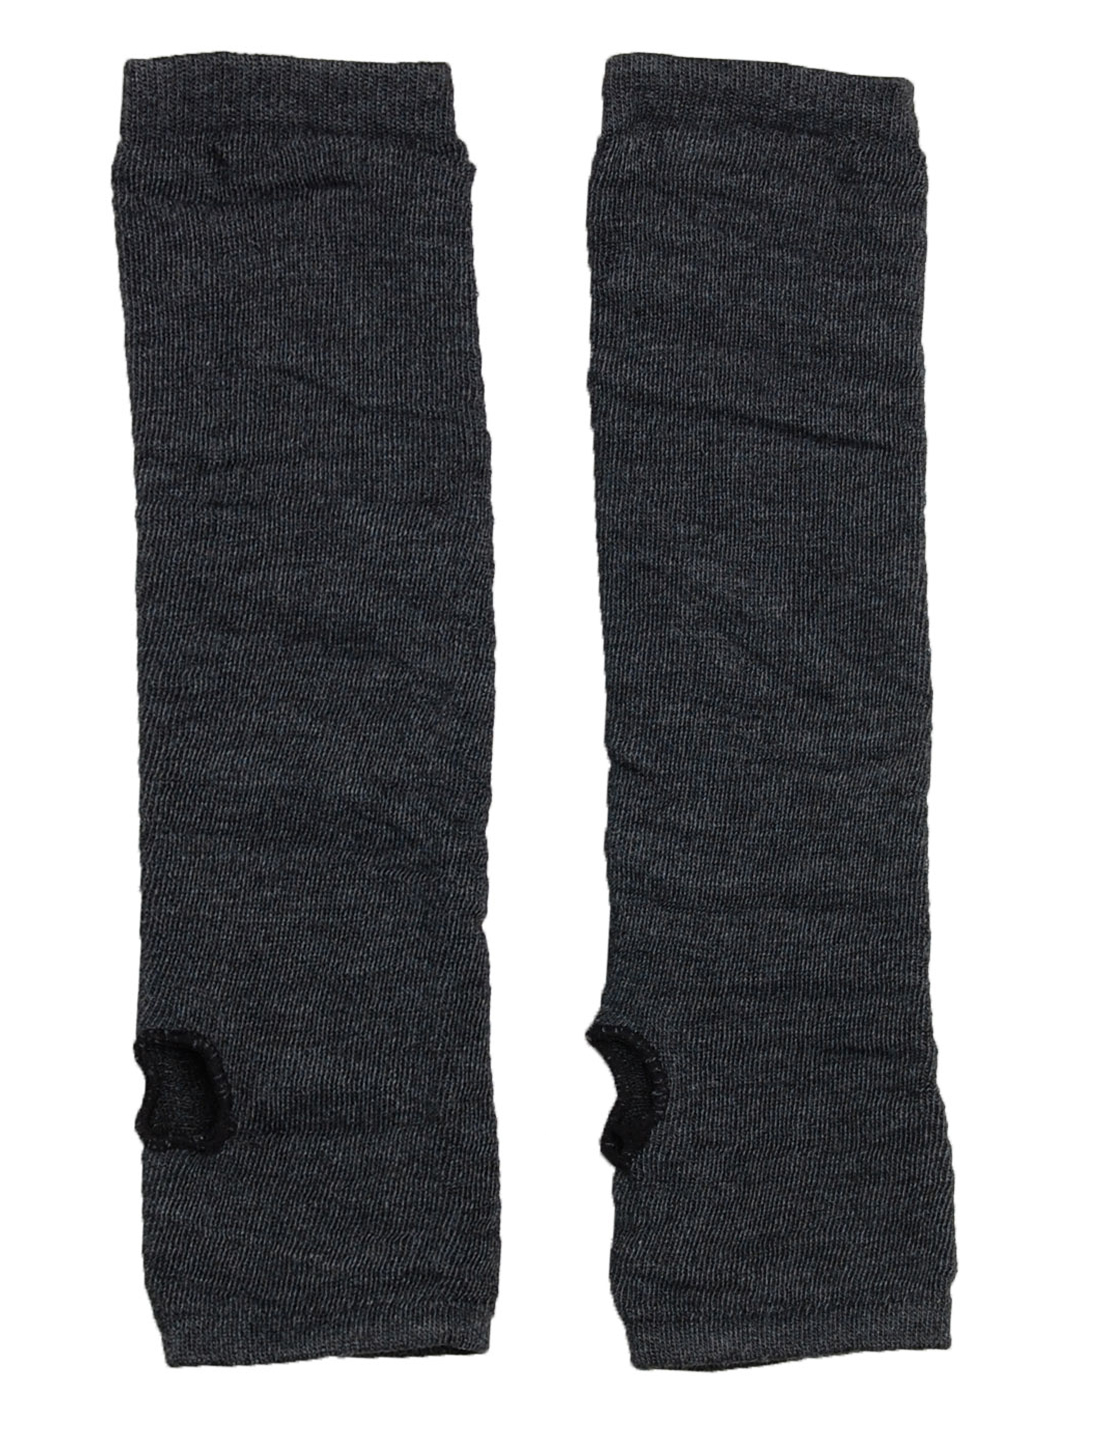 Modern Ladies' Long Arm Fingerless Warmer Gloves